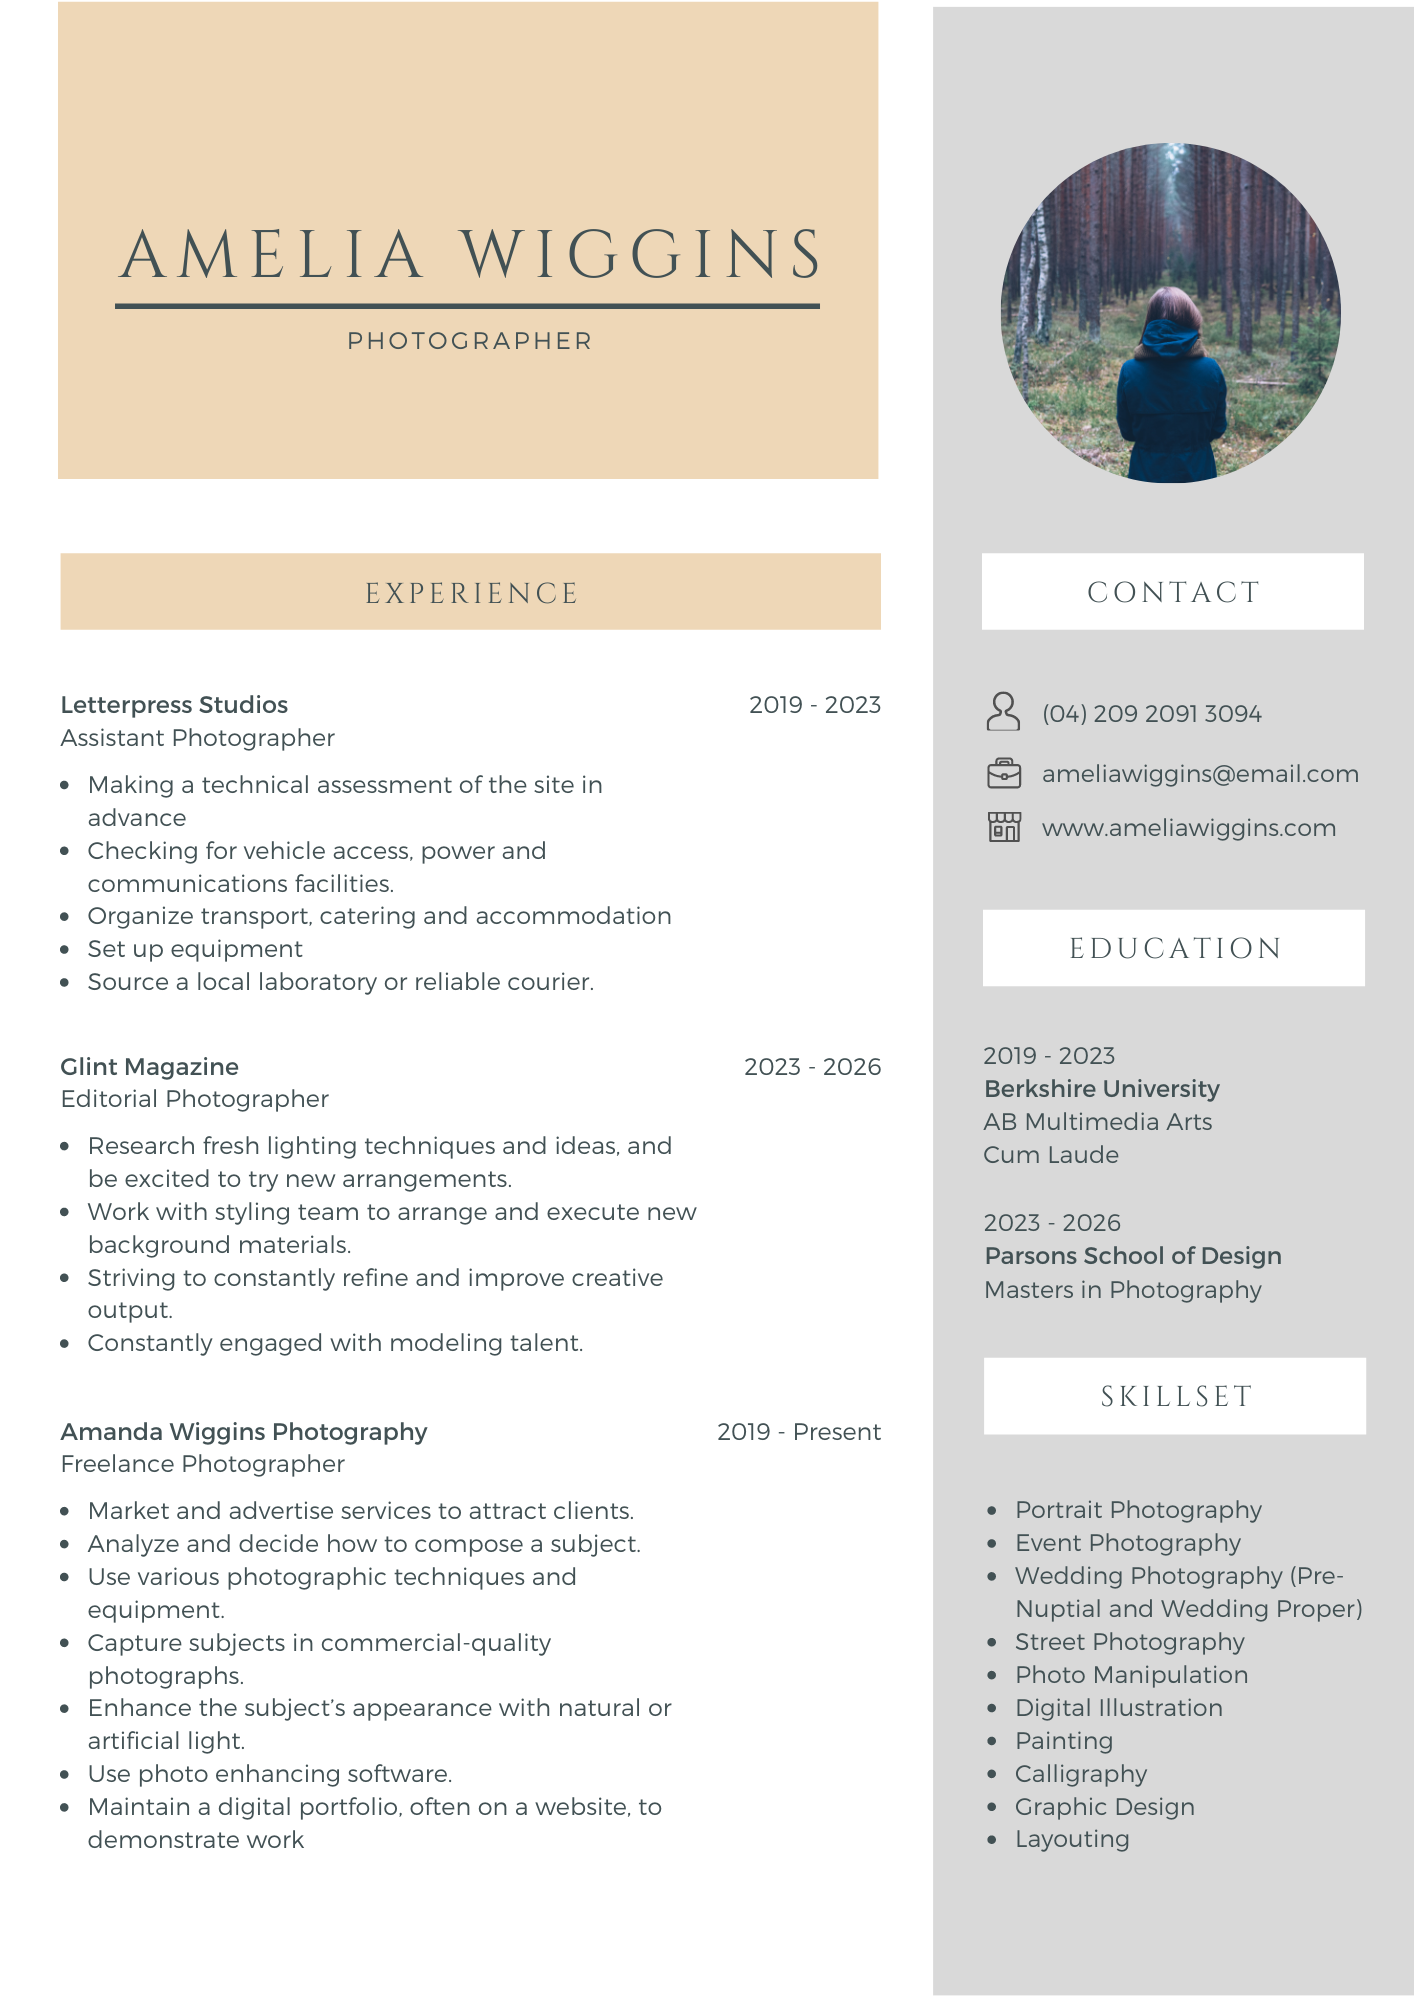 I will provide professional resume writing, CV writing services